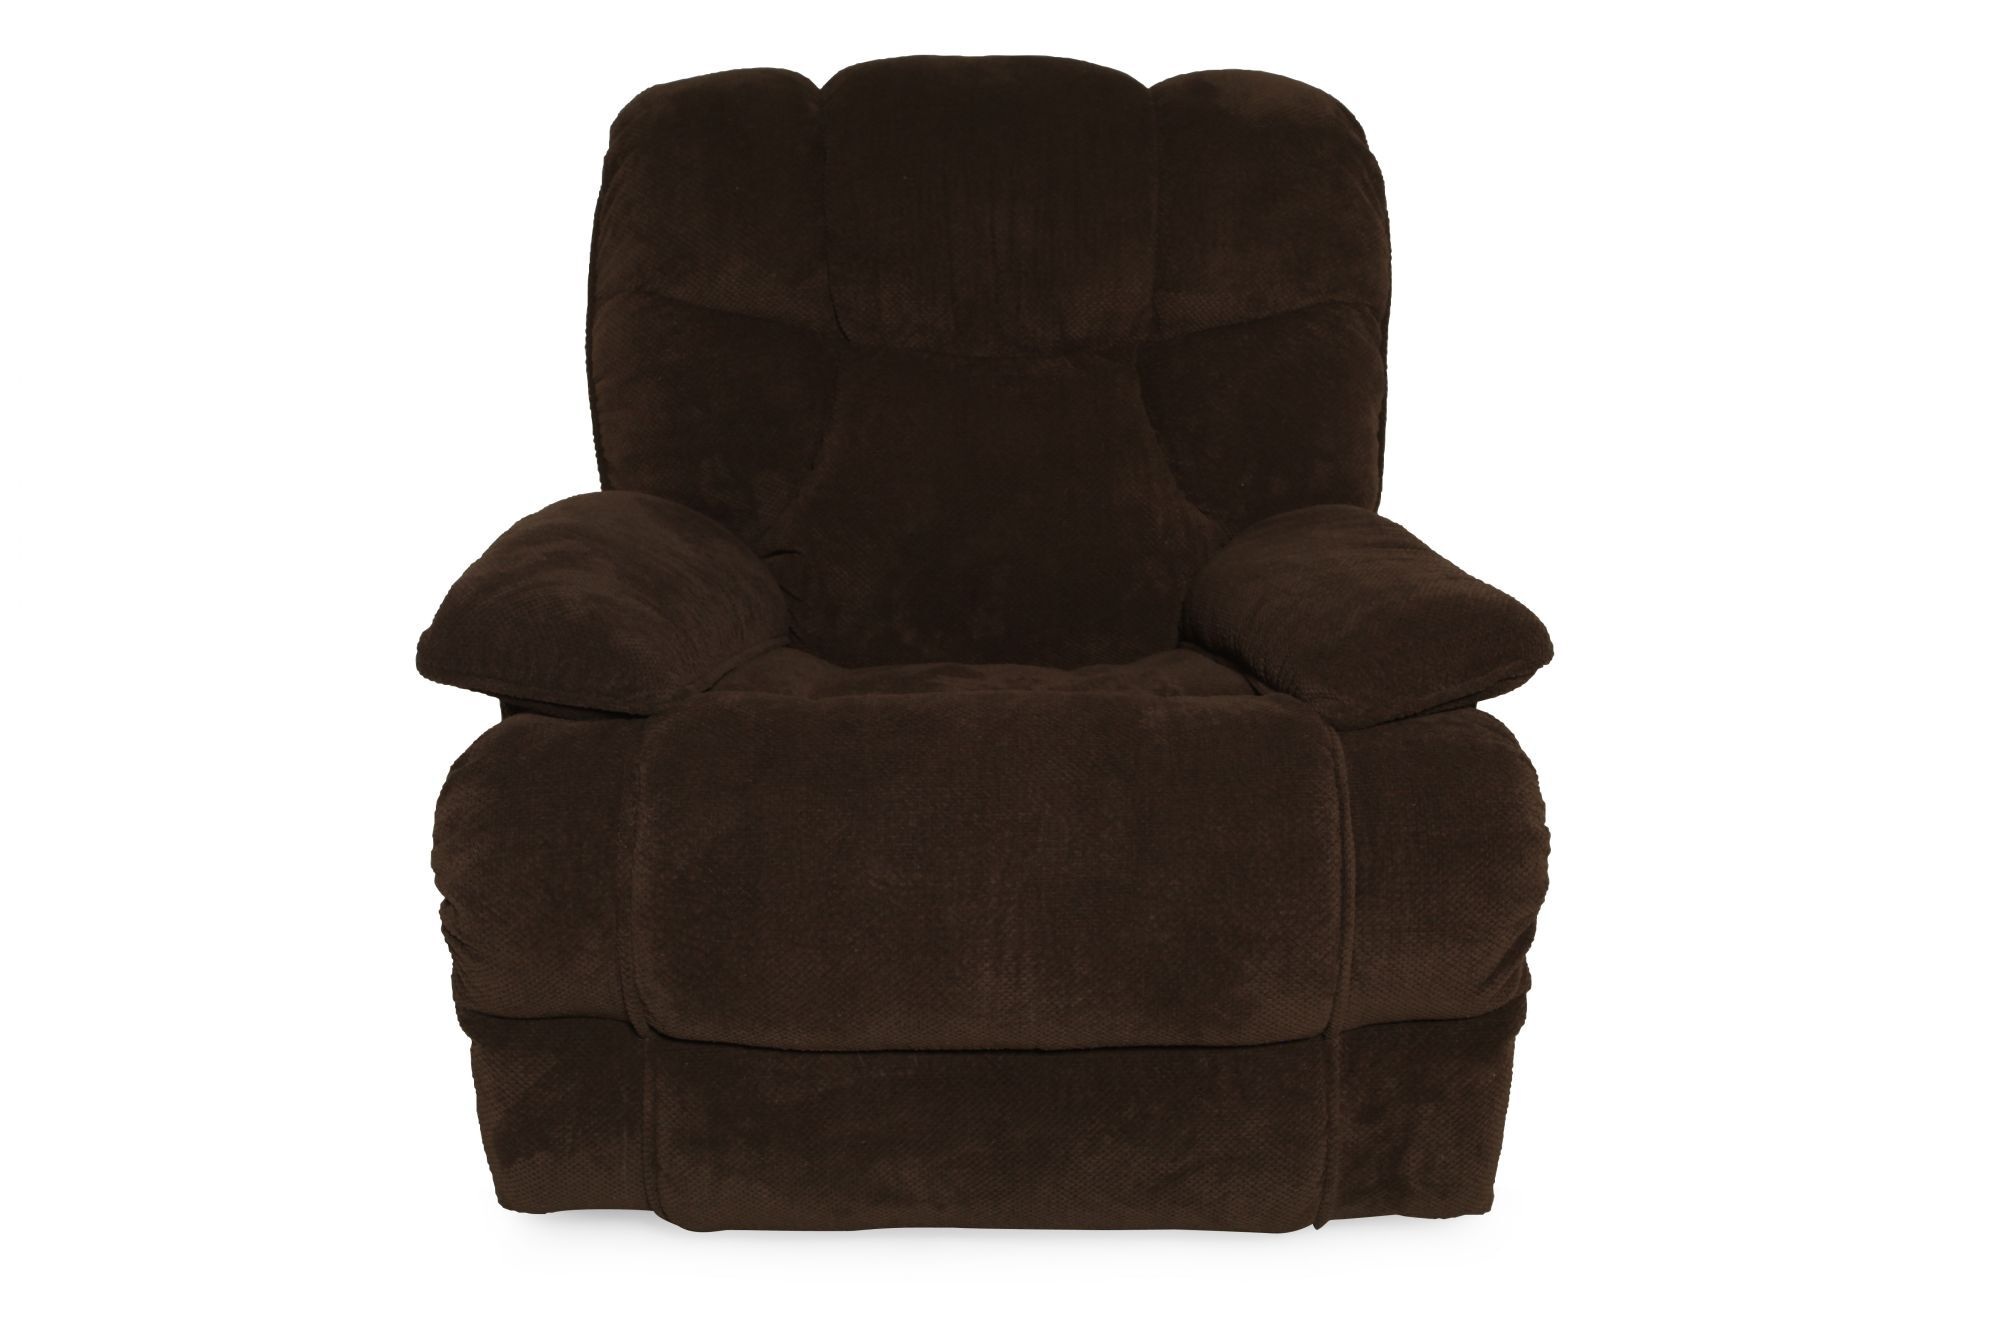 Lane Luck Chocolate Massage Recliner  sc 1 st  Mathis Brothers & Lane Luck Chocolate Massage Recliner | Mathis Brothers Furniture islam-shia.org